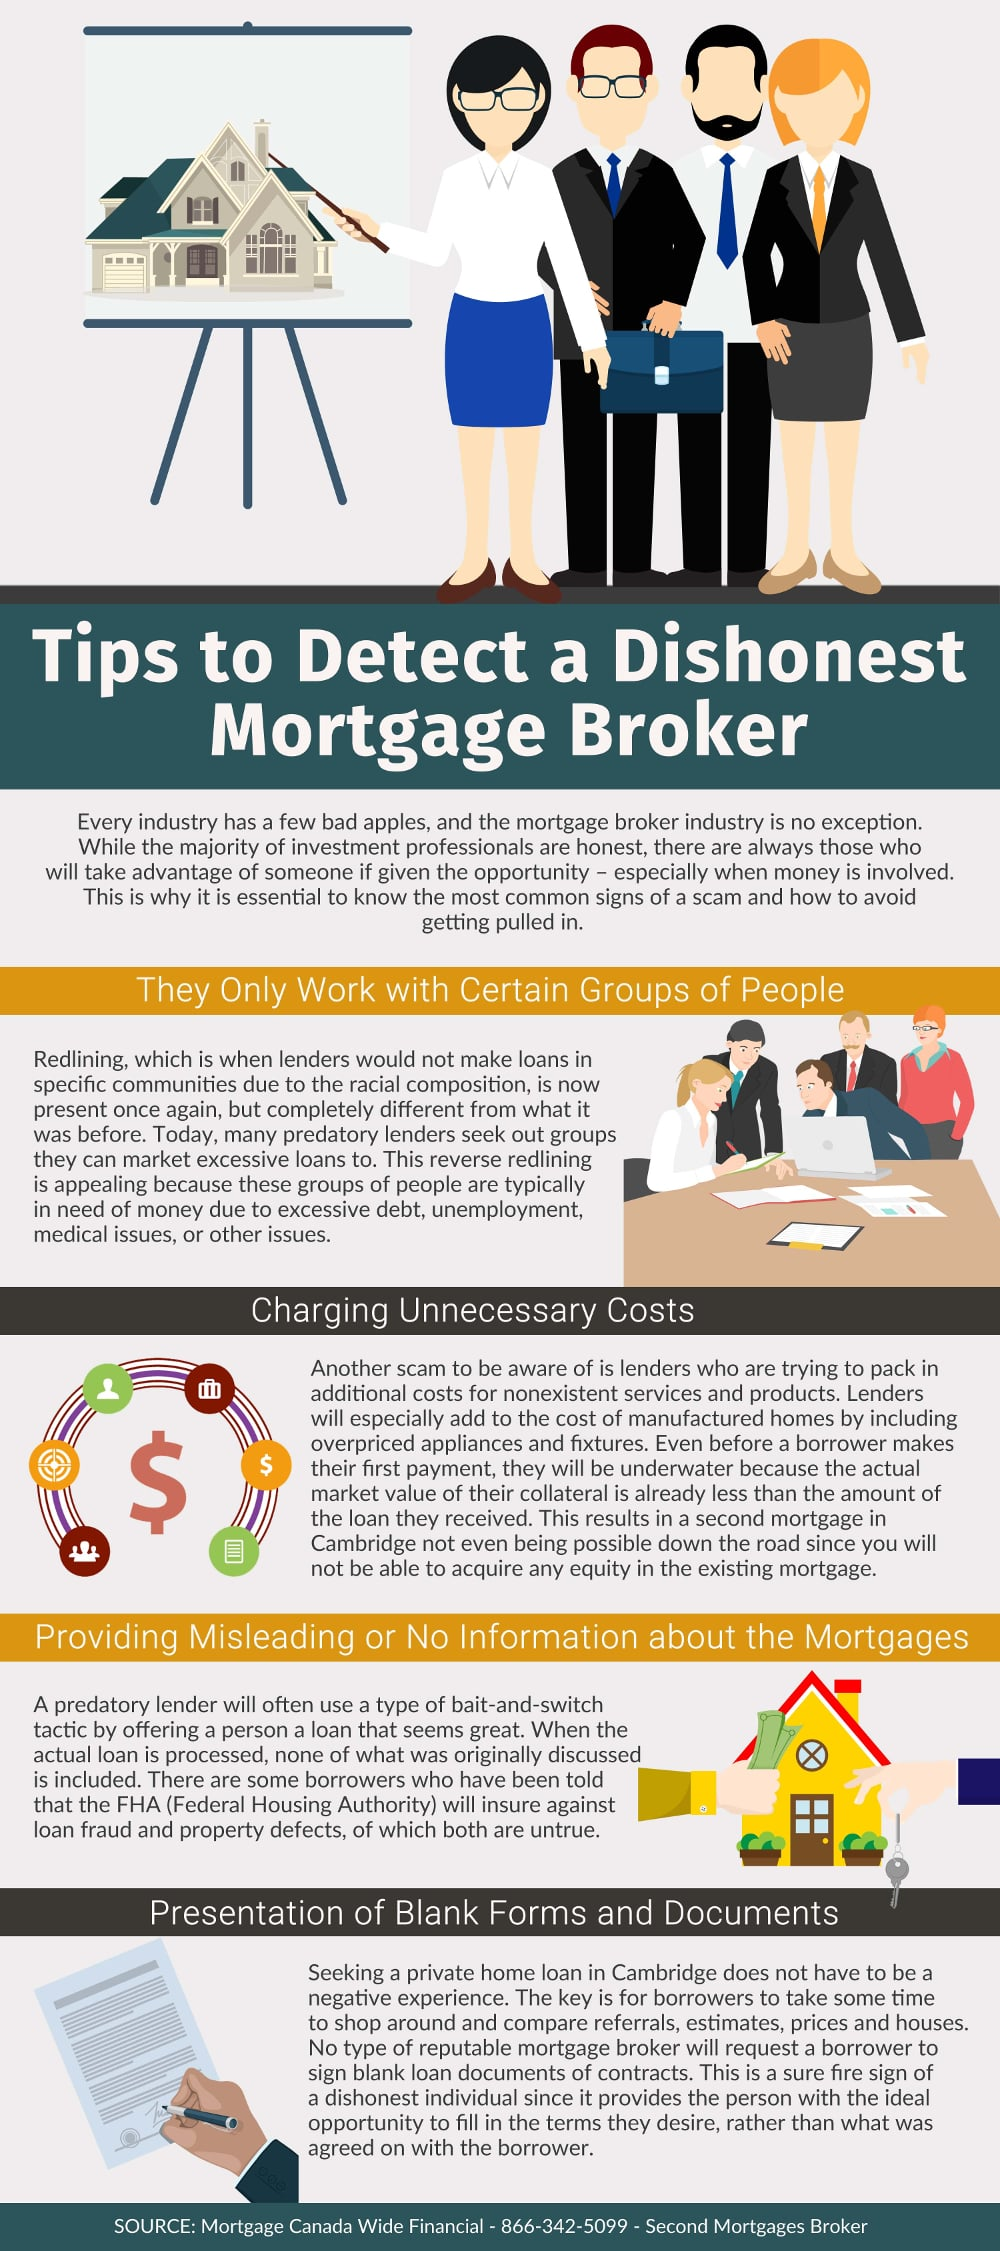 Tips to Detect a Dishonest Mortgage Broker